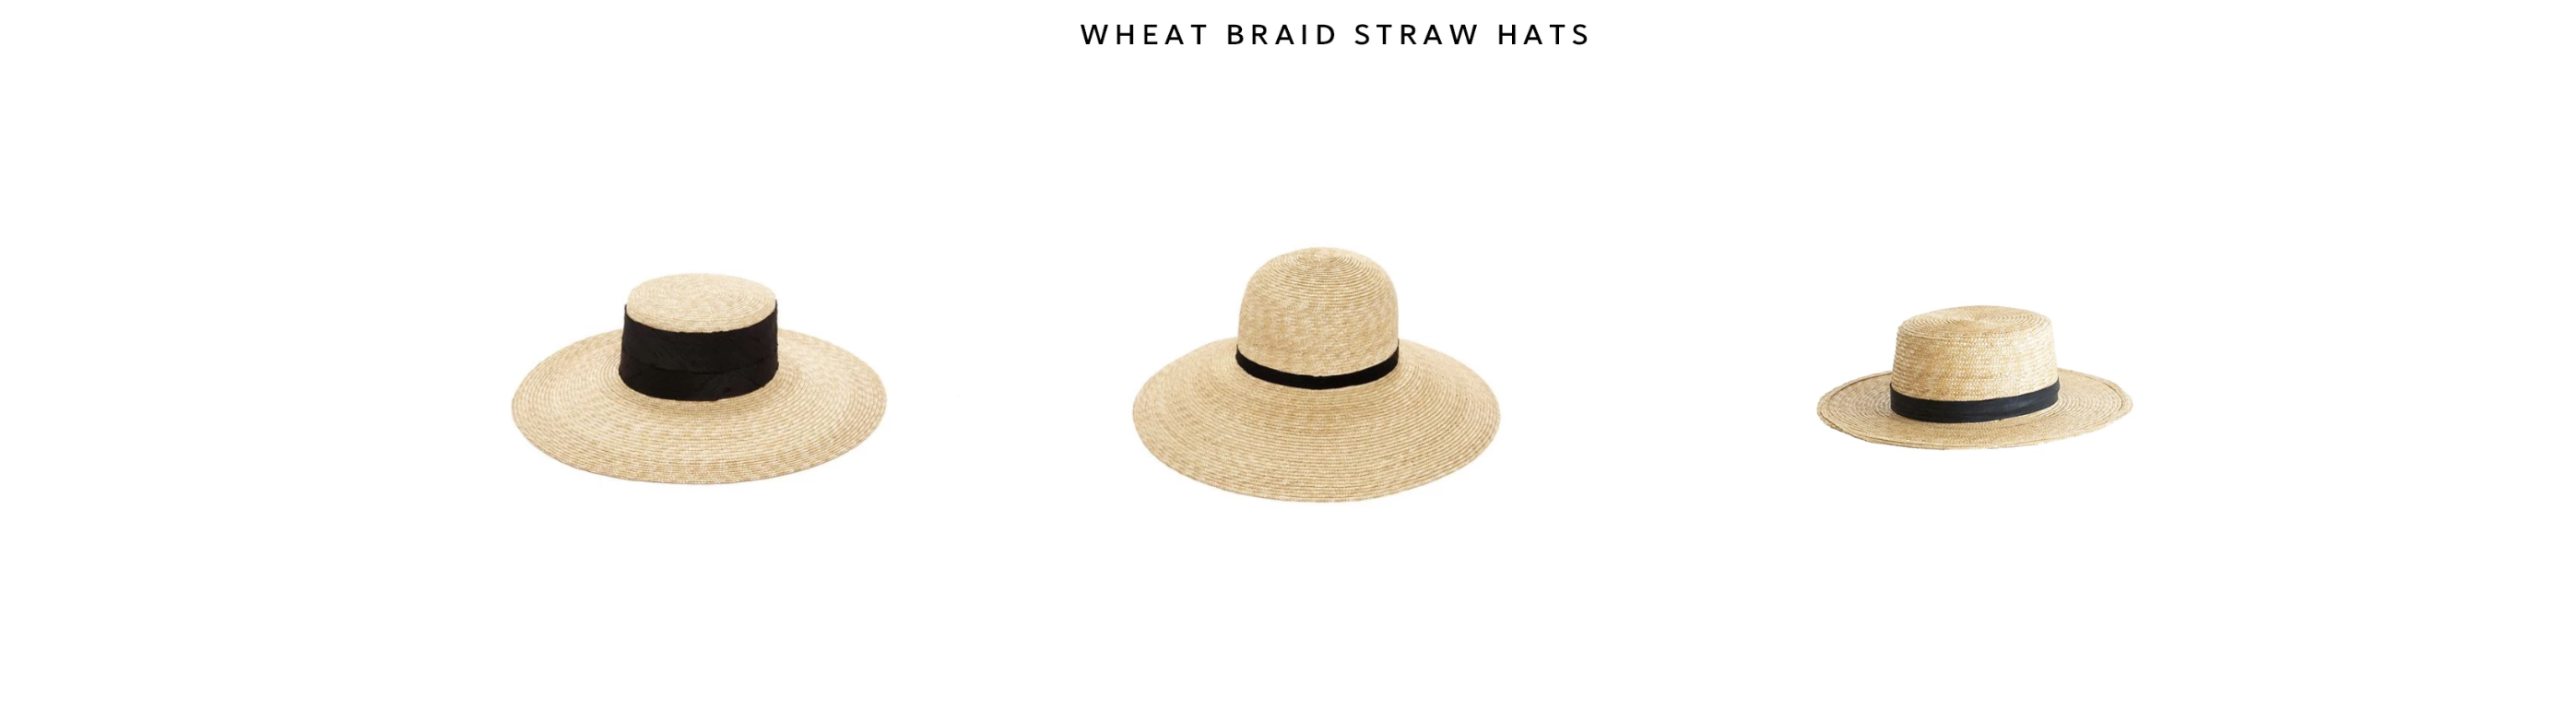 Wheat braid straw hats by janessa leone about our straw hats